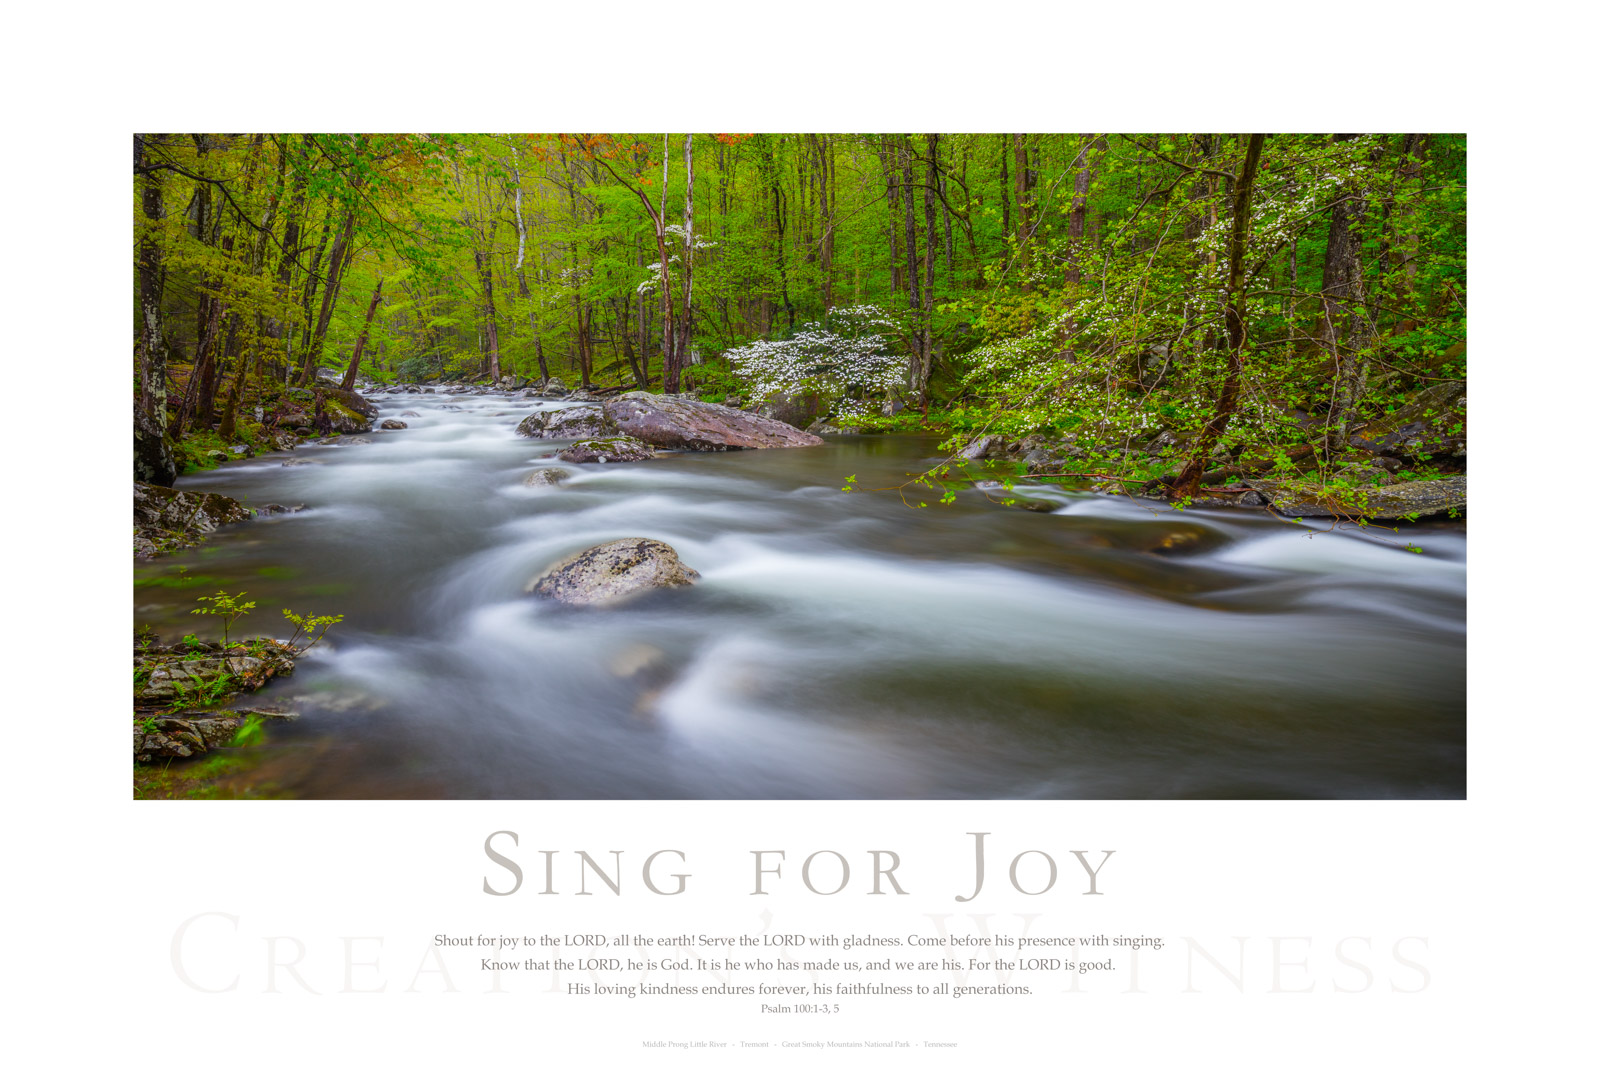 Shout for joy to the LORD, all the earth! Serve the LORD with gladness. Come before his presence with singing. Know that the...